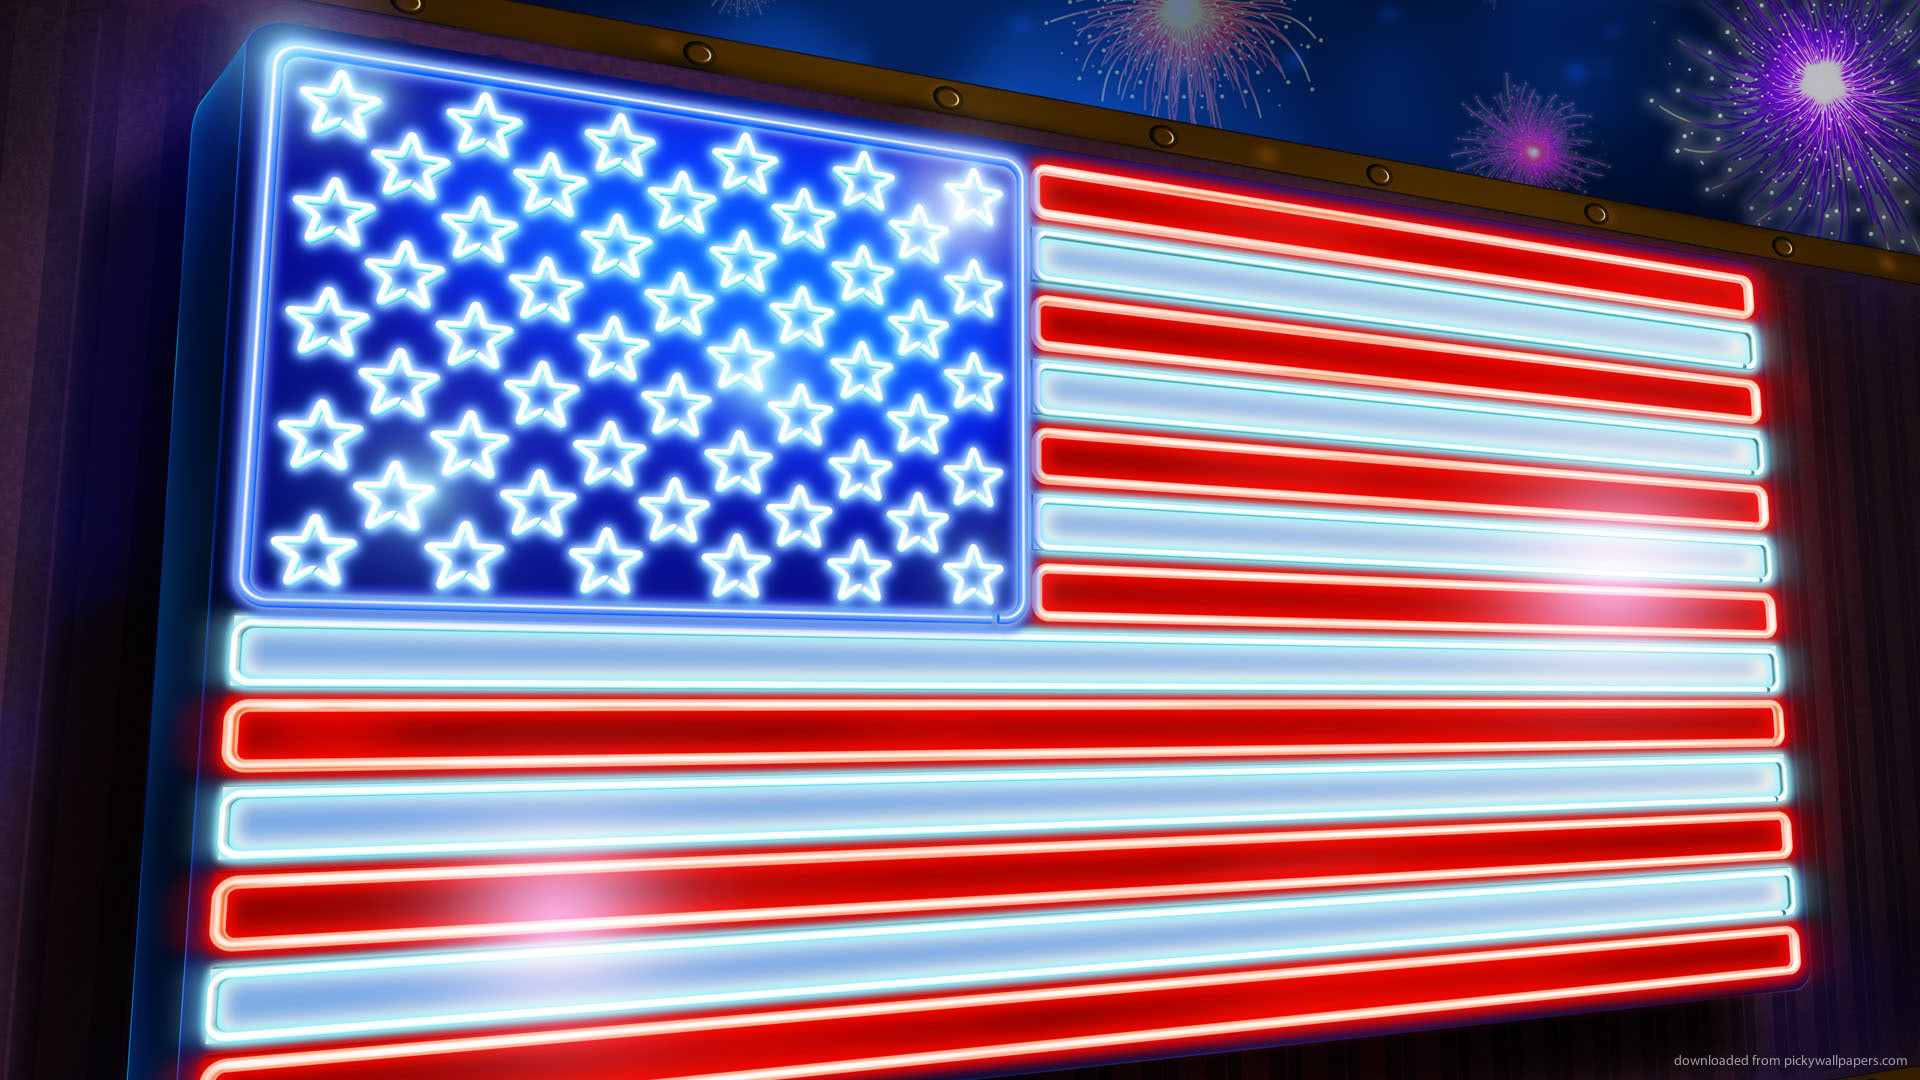 HD wallpaper archived by usa flag wallpaper .